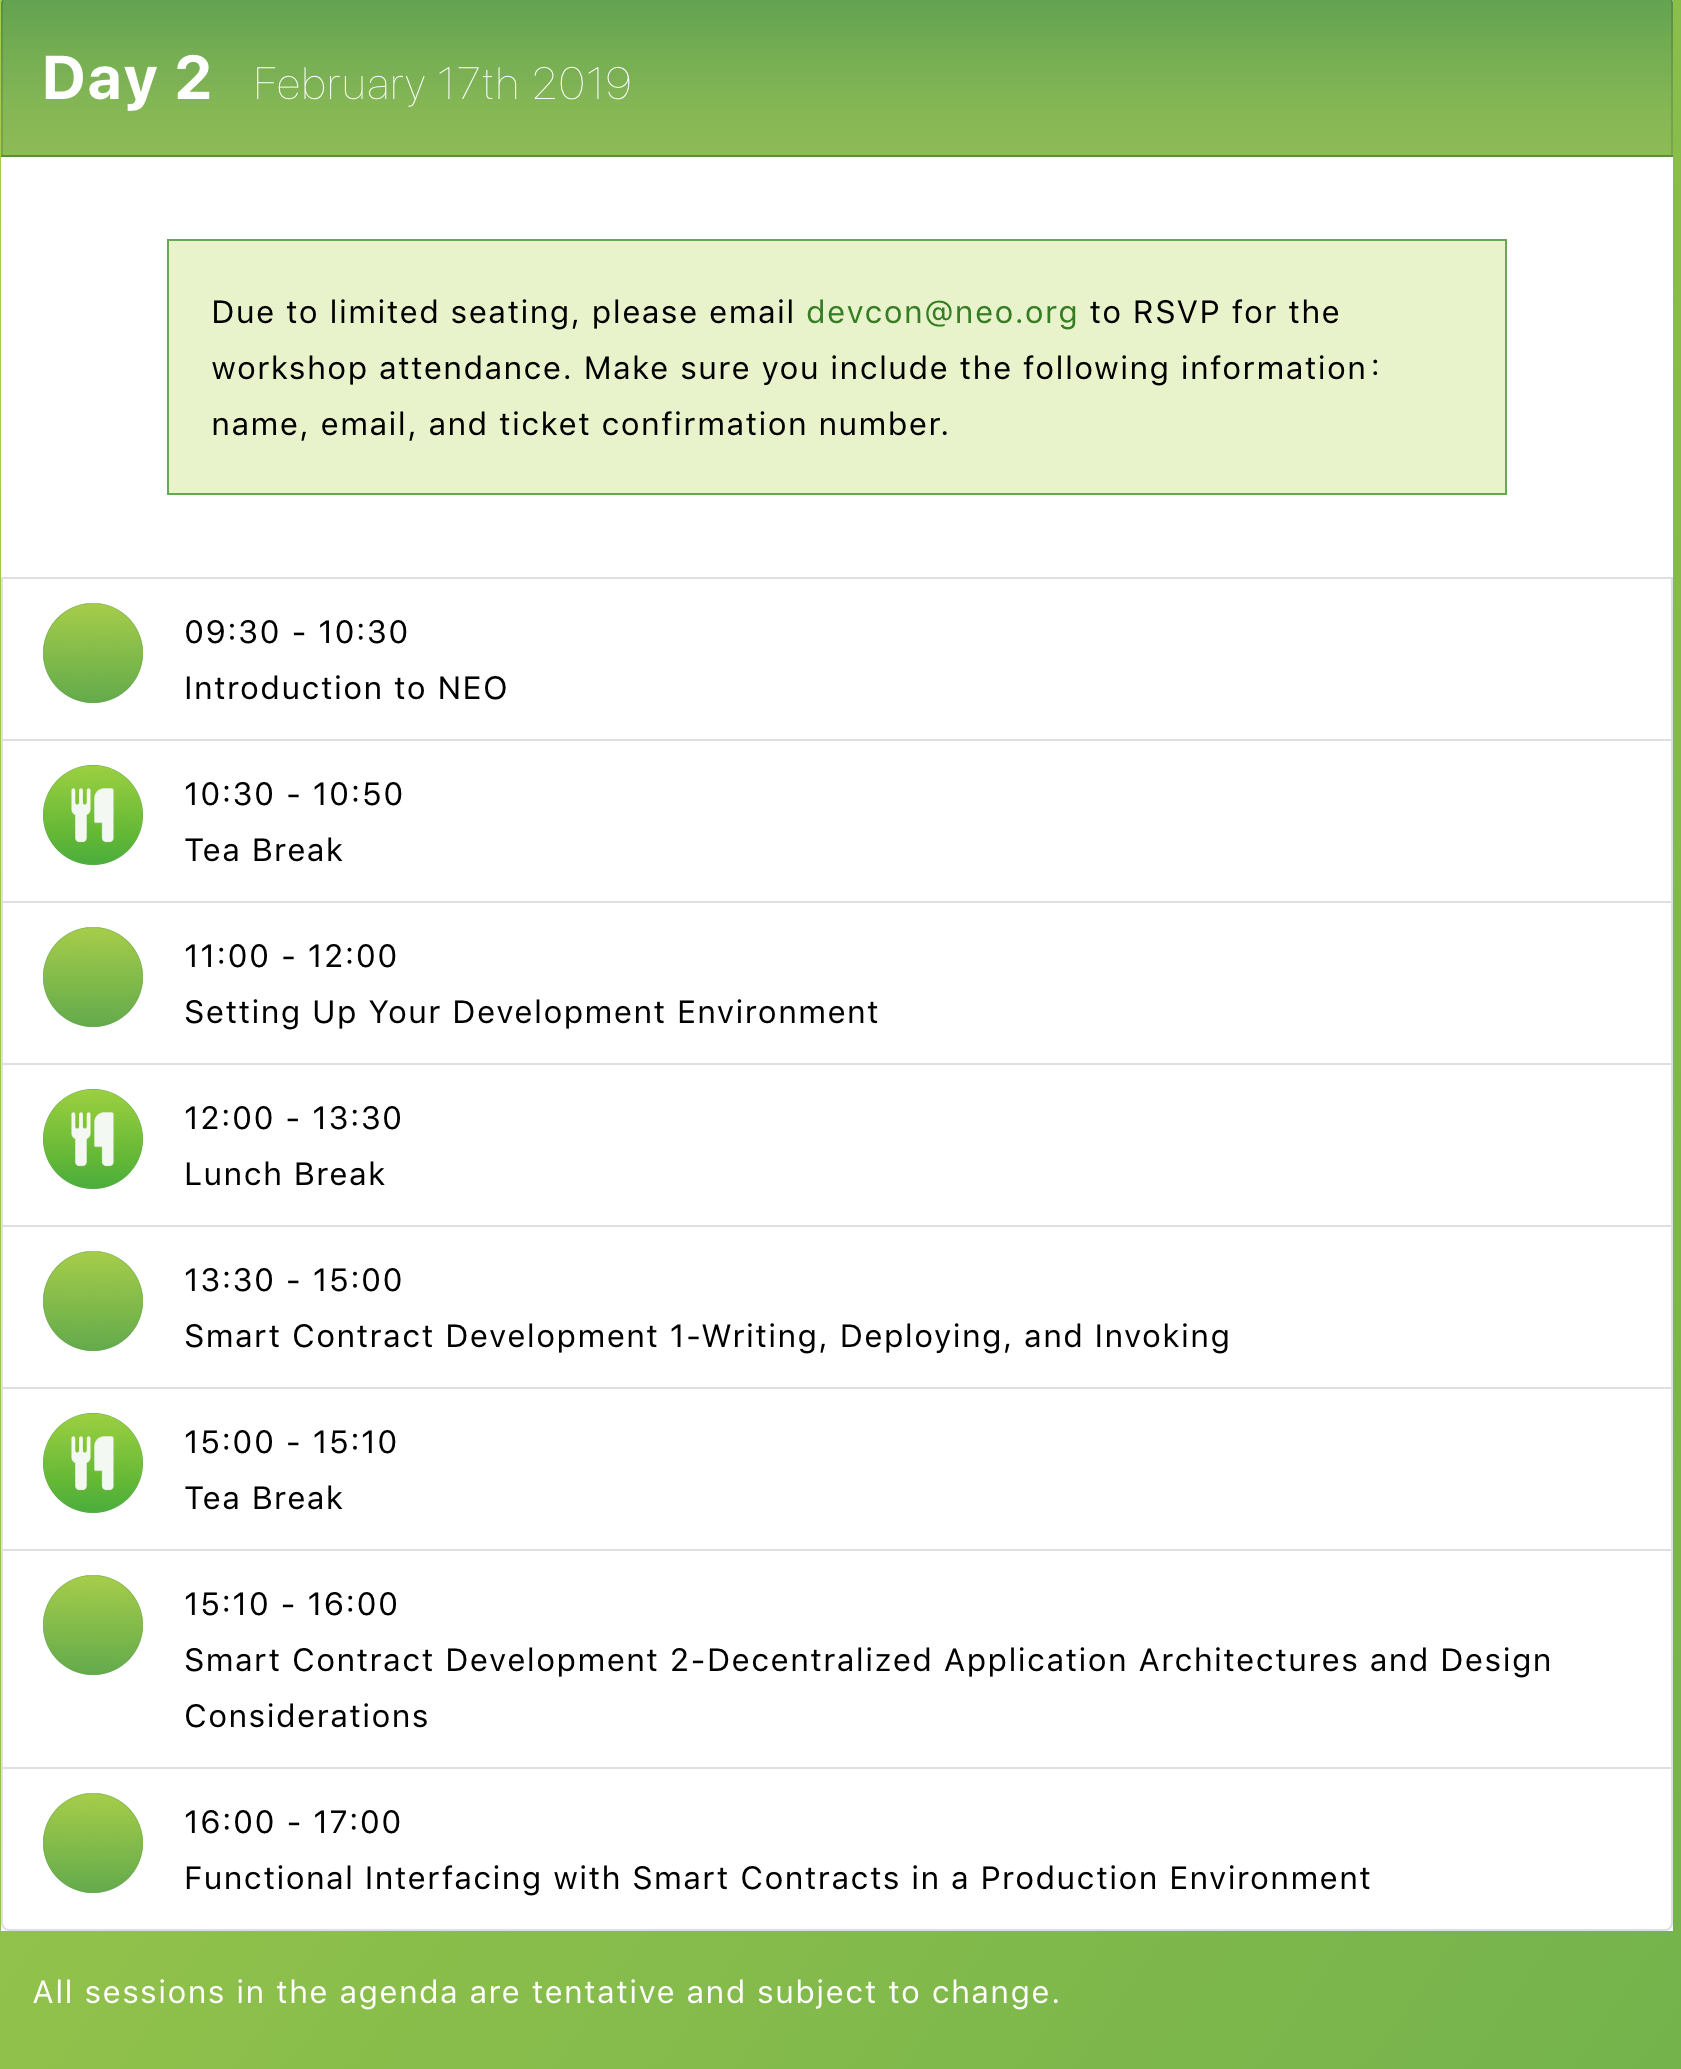 A Complete List of Guest Speakers & Agenda for NEO DevCon